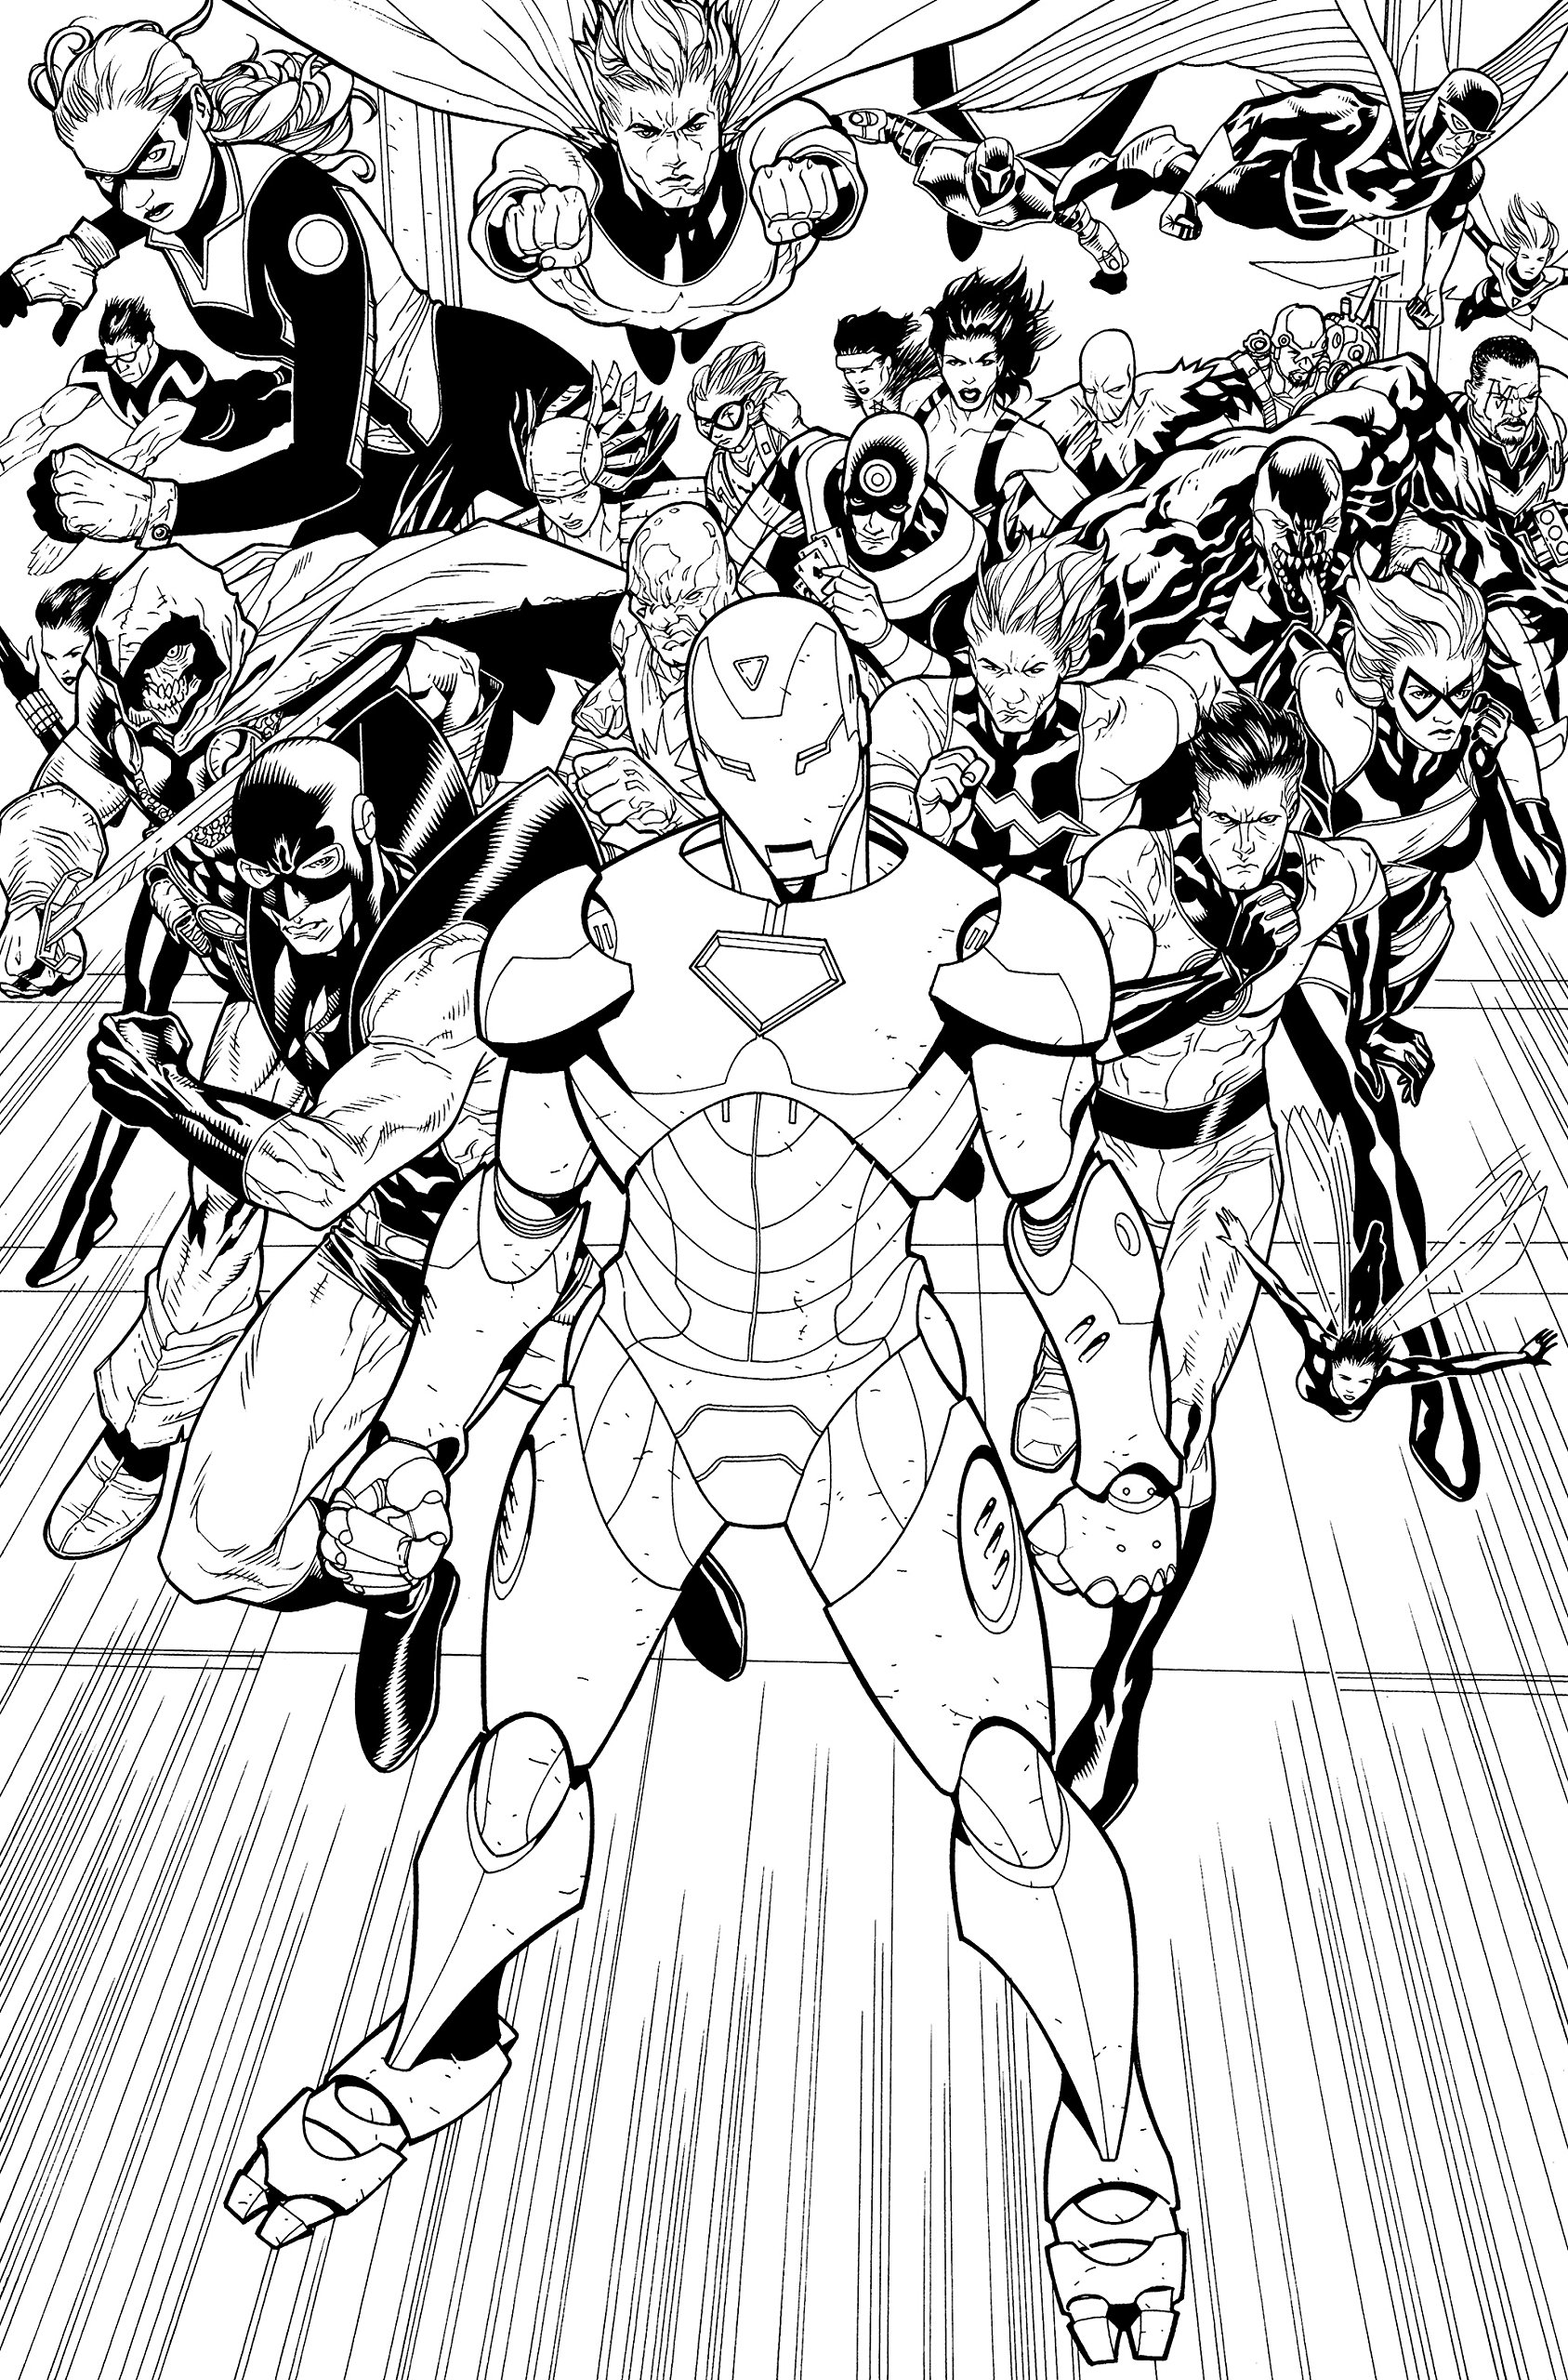 color your own civil war steve mcniven 9780785195597 amazon com